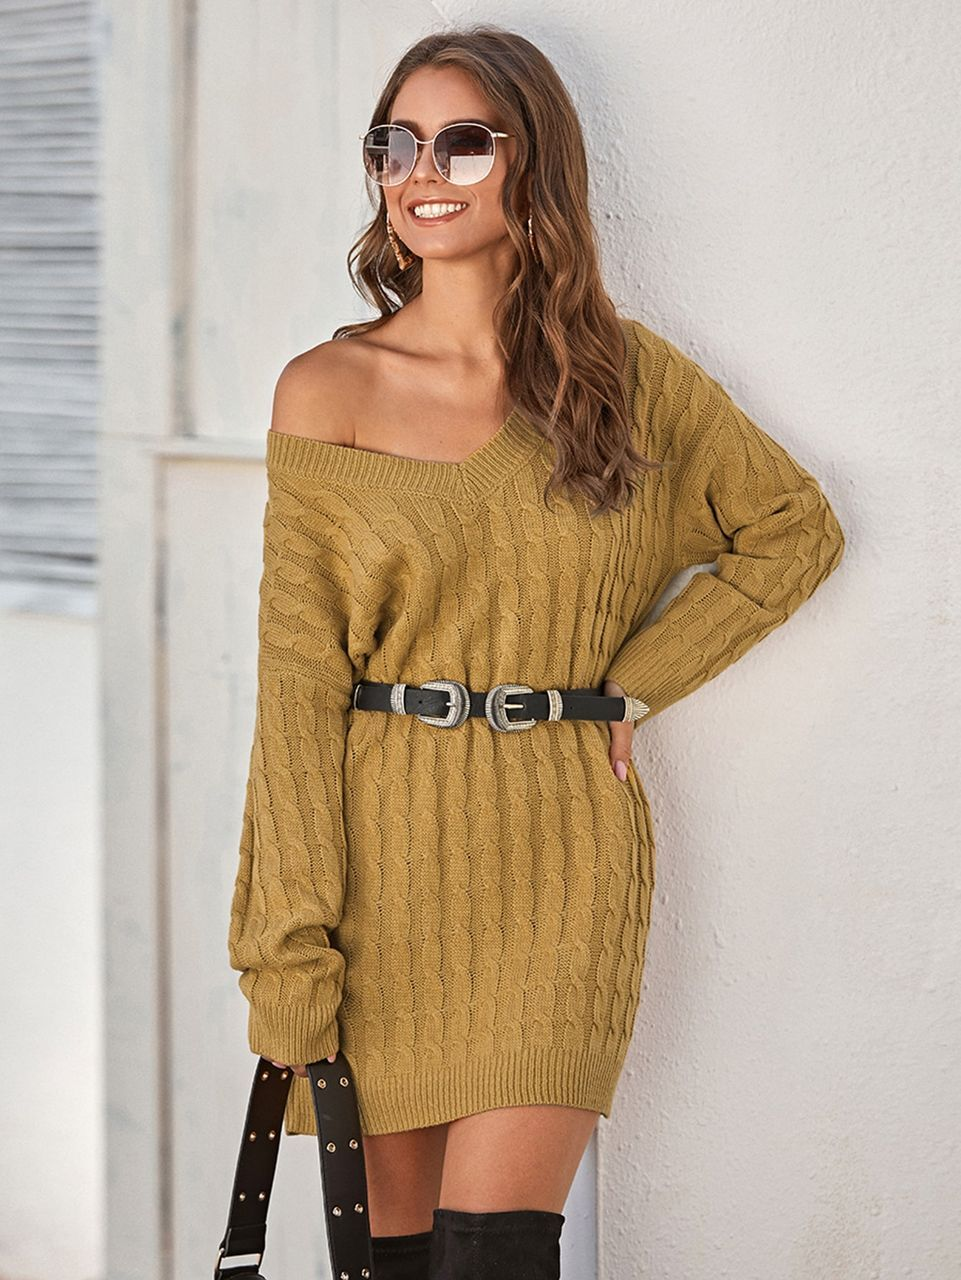 18++ Cable knit sweater dress ideas ideas